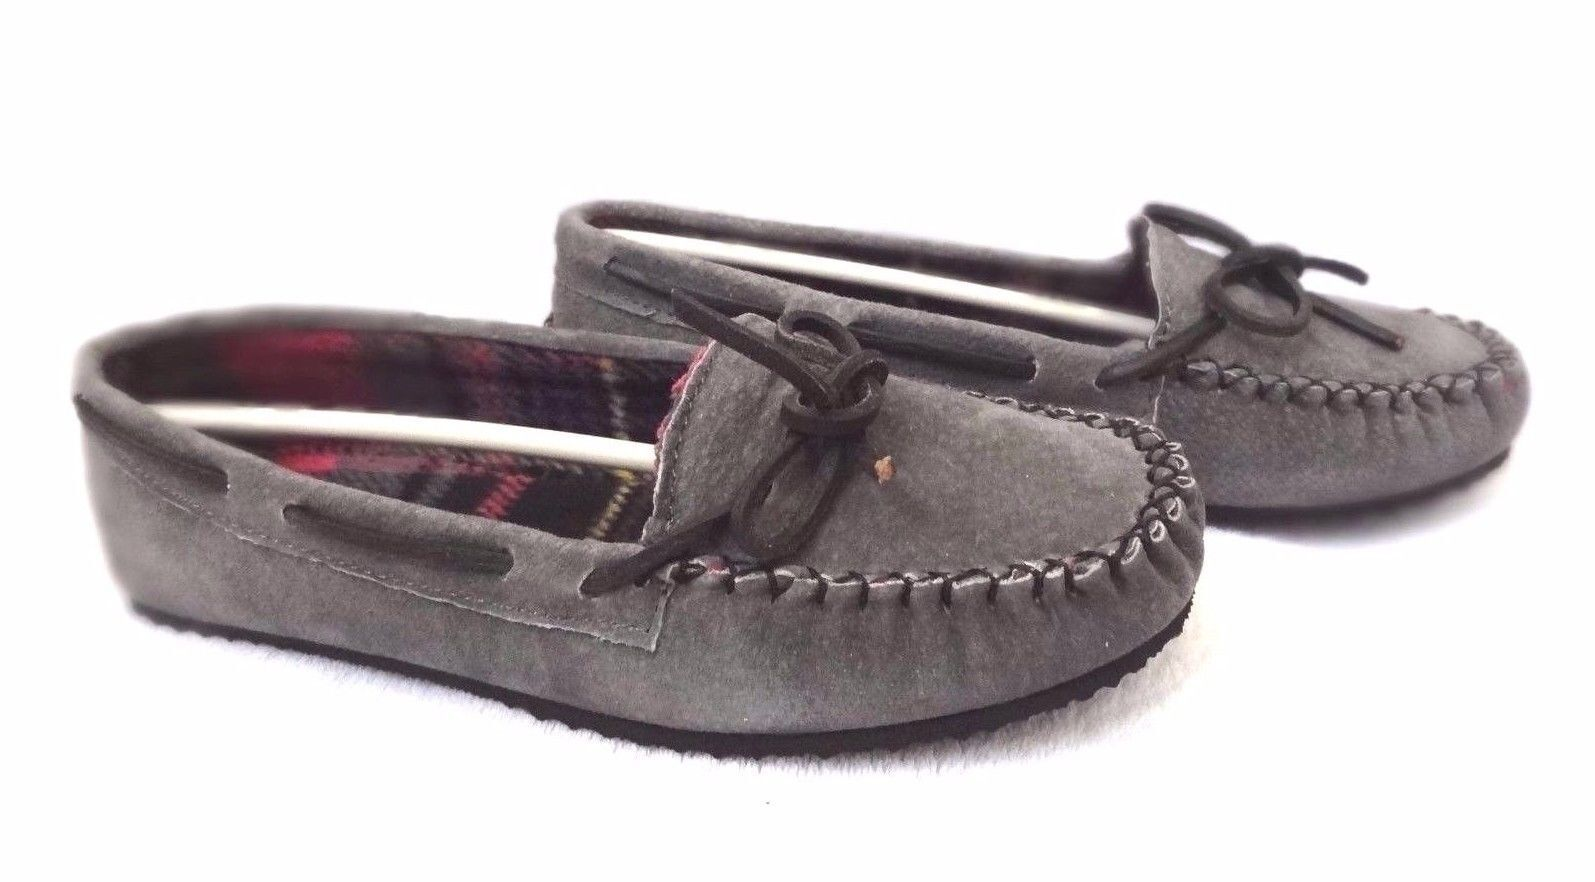 Peace Mocs Women's Suede Ohio Loafers Moccasins Shoes  Grey  Size 7